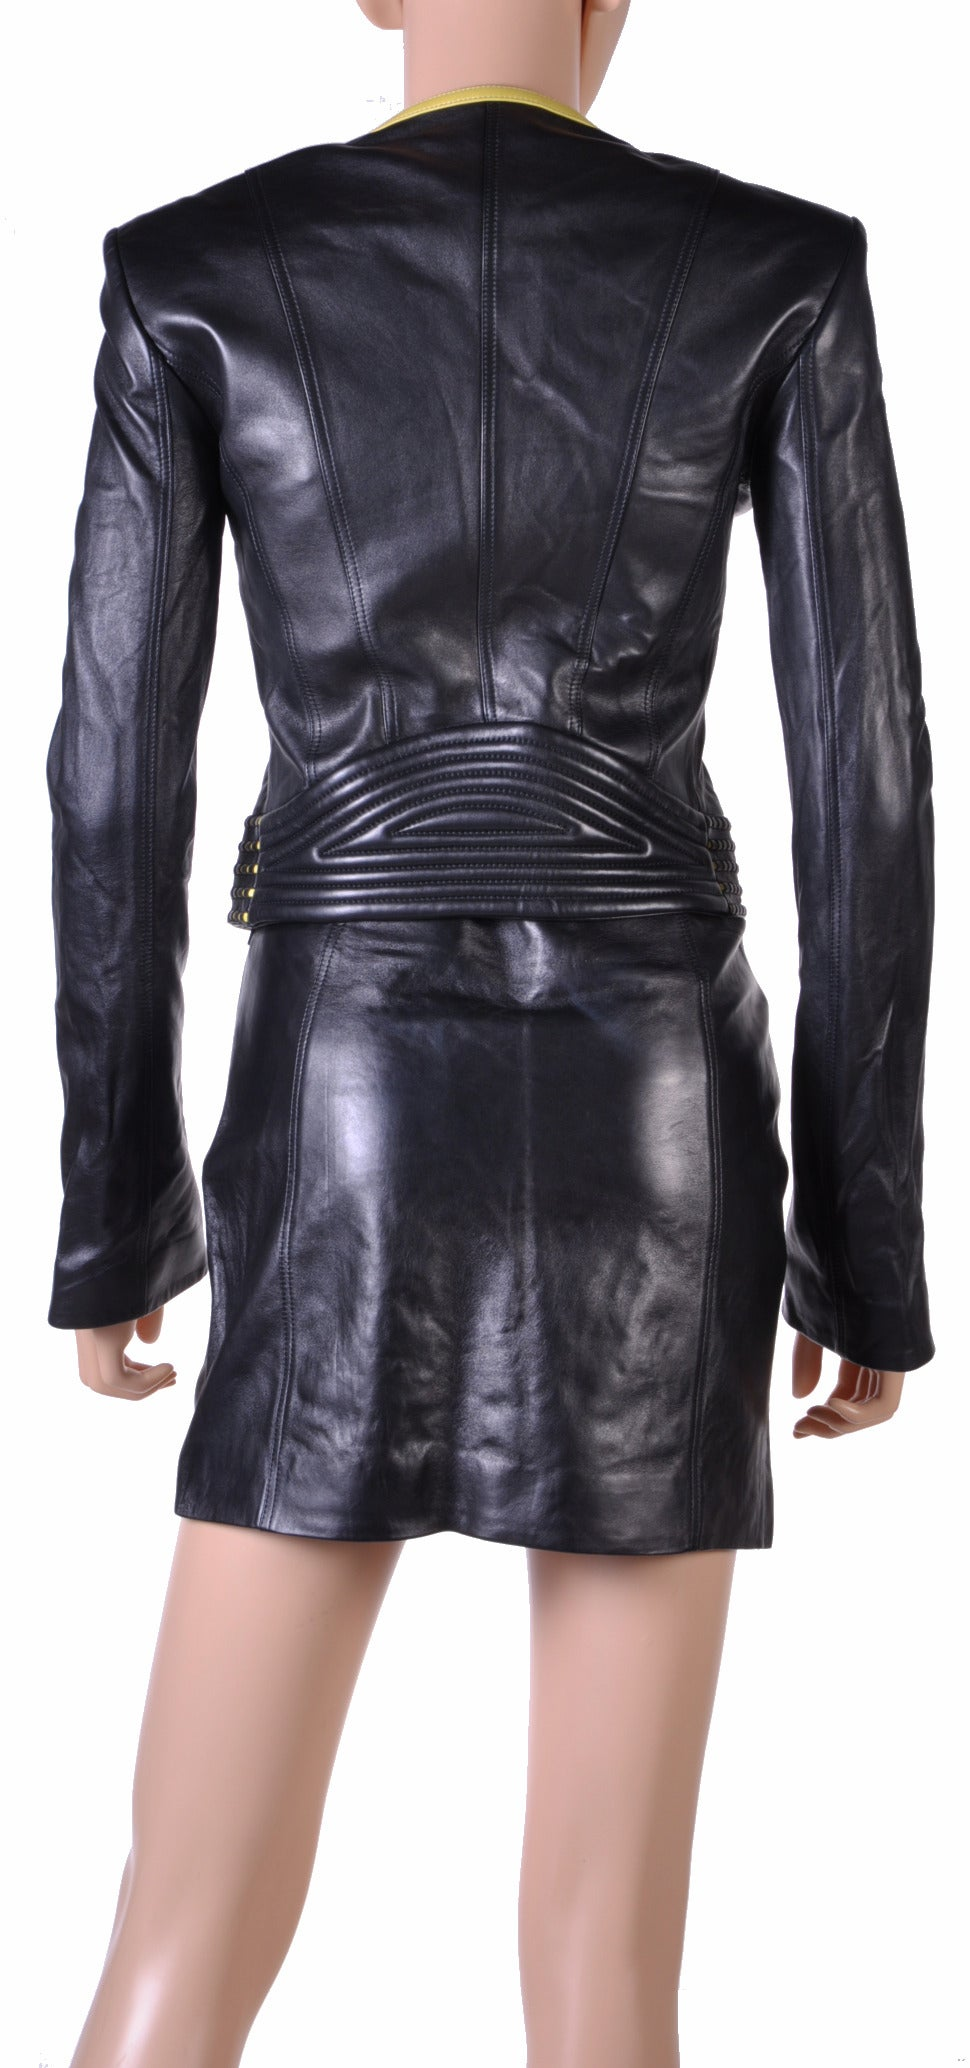 new versace leather jacket and skirt suit at 1stdibs